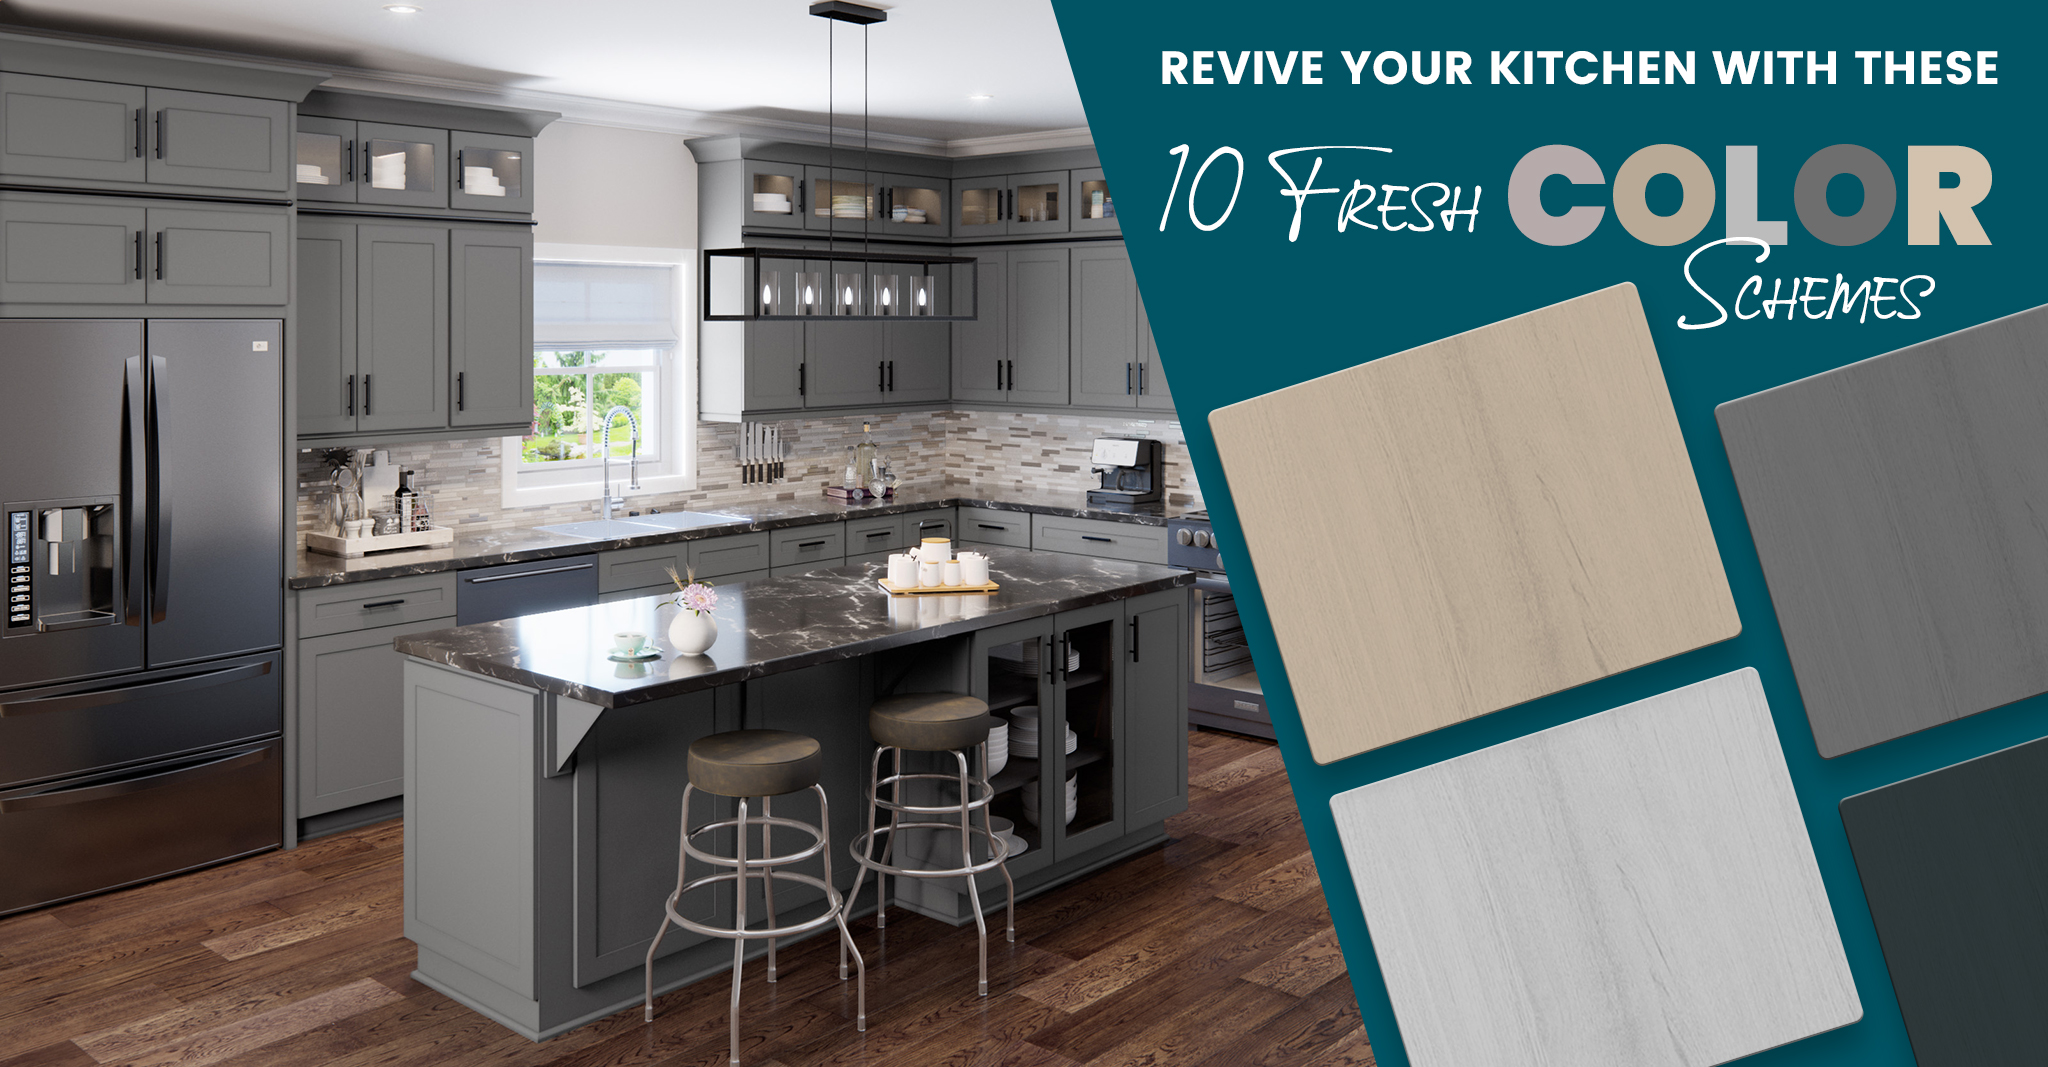 Revive Your Kitchen With These 10 Fresh Color Schemes